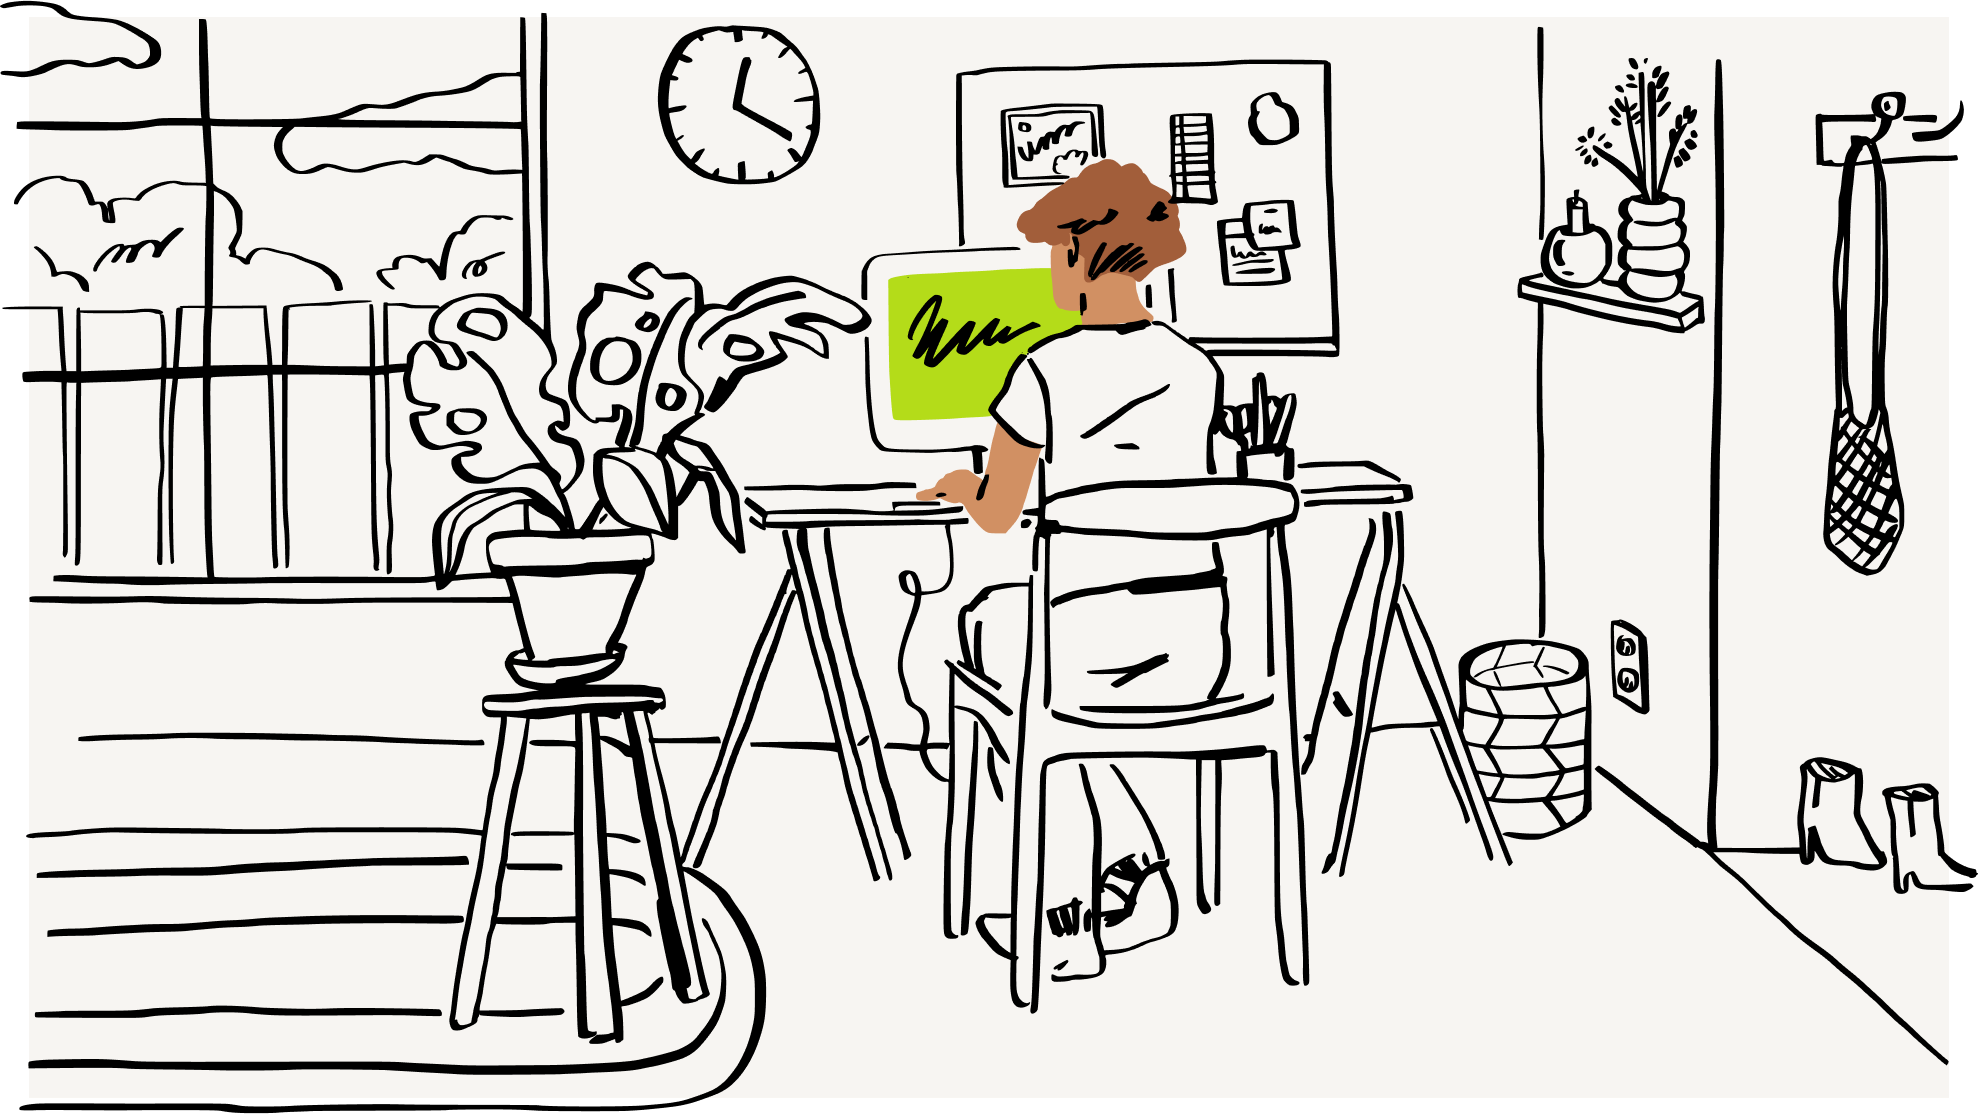 An illustration of a person reviewing various eSignature solutions on their desktop